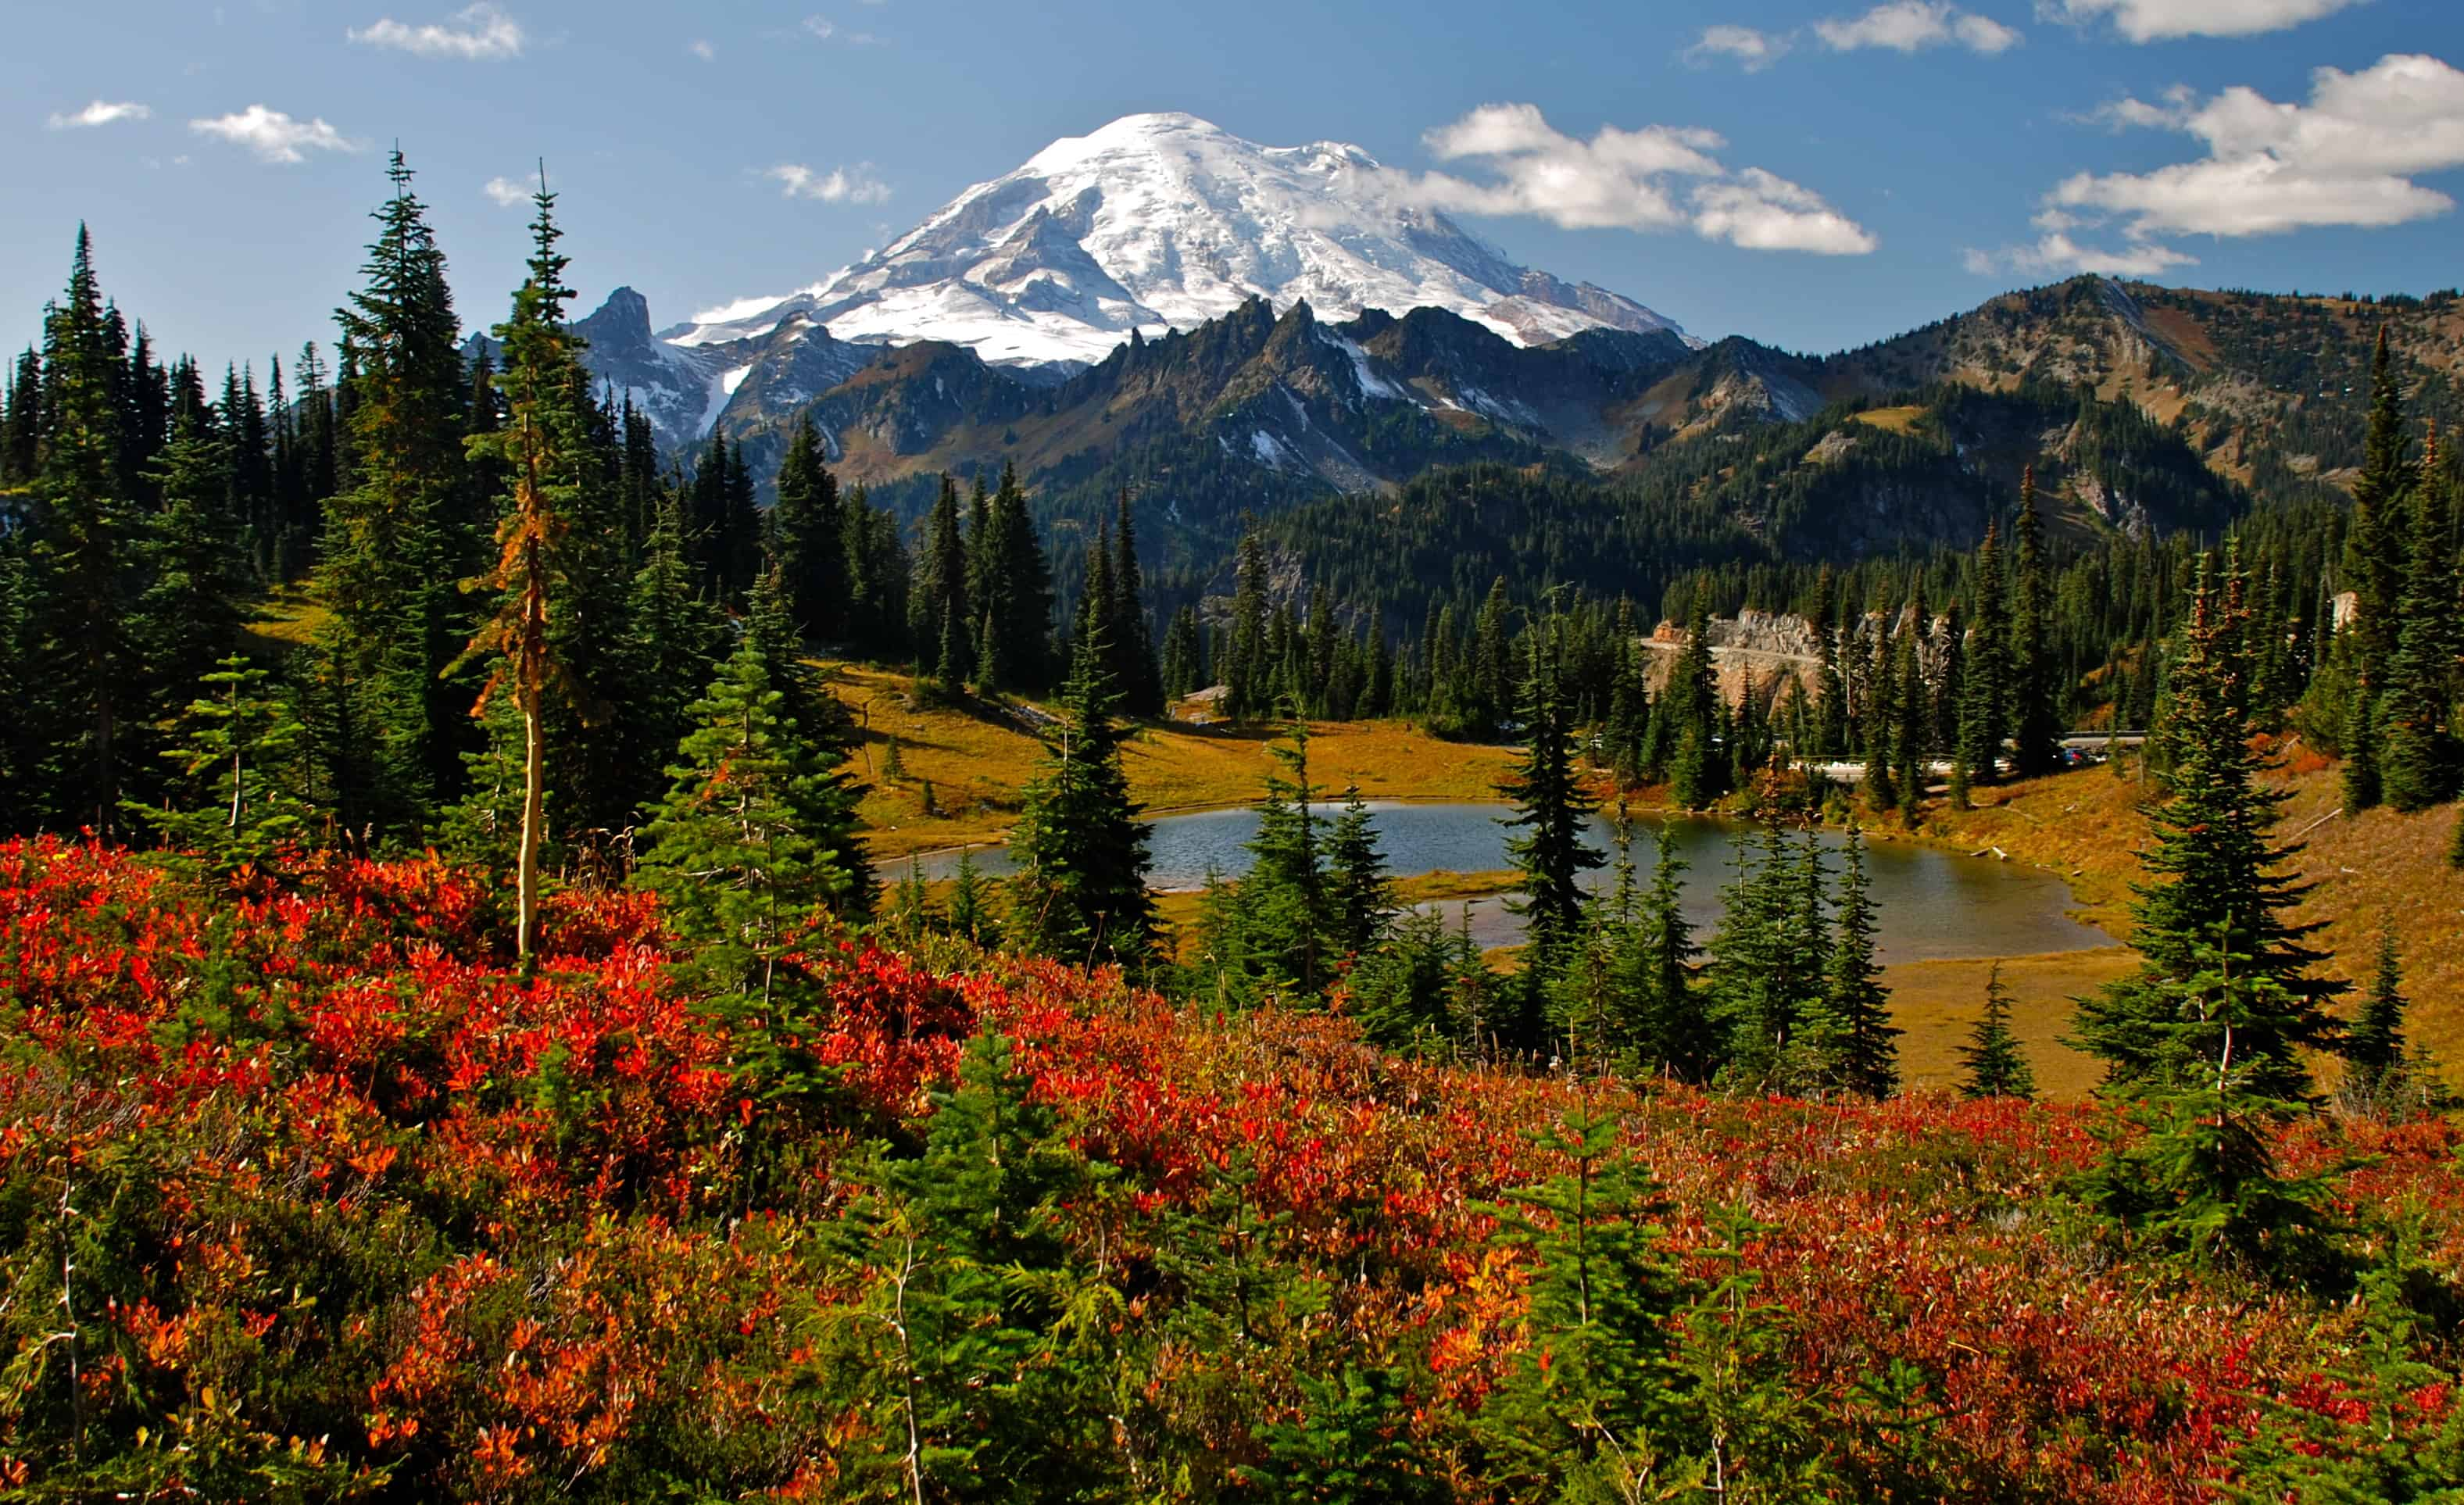 Mount Rainier Fall Colors Photo Courtesy Mike Peters